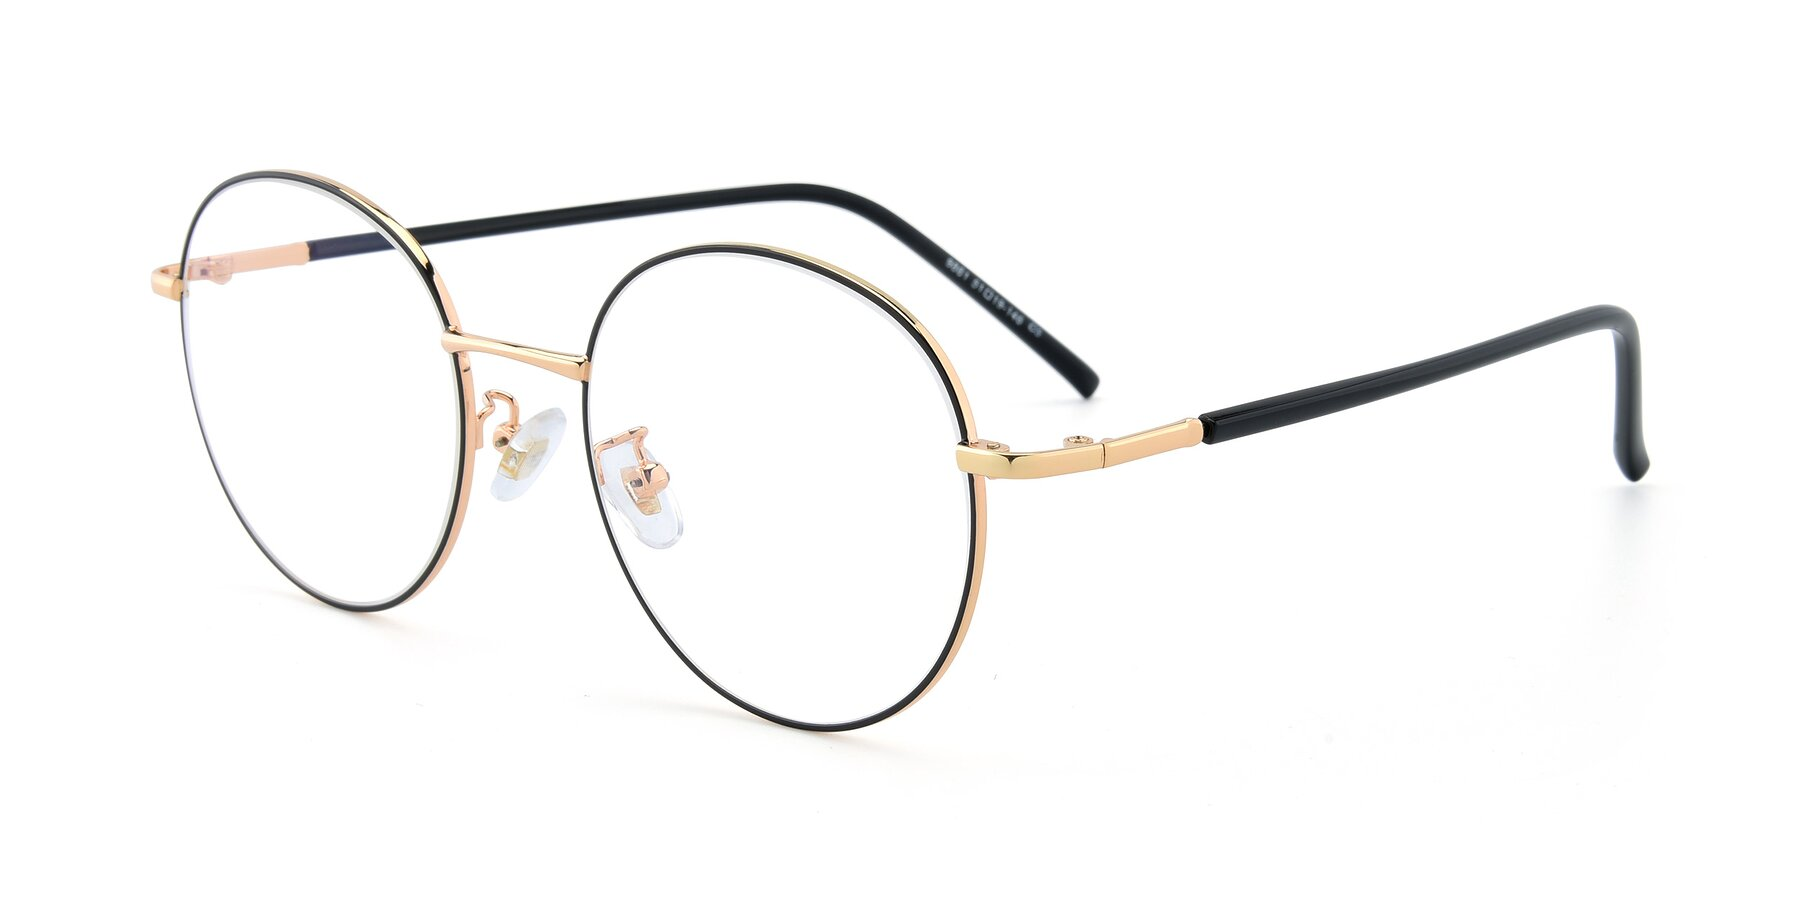 Angle of 9861 in Black-Gold with Clear Eyeglass Lenses